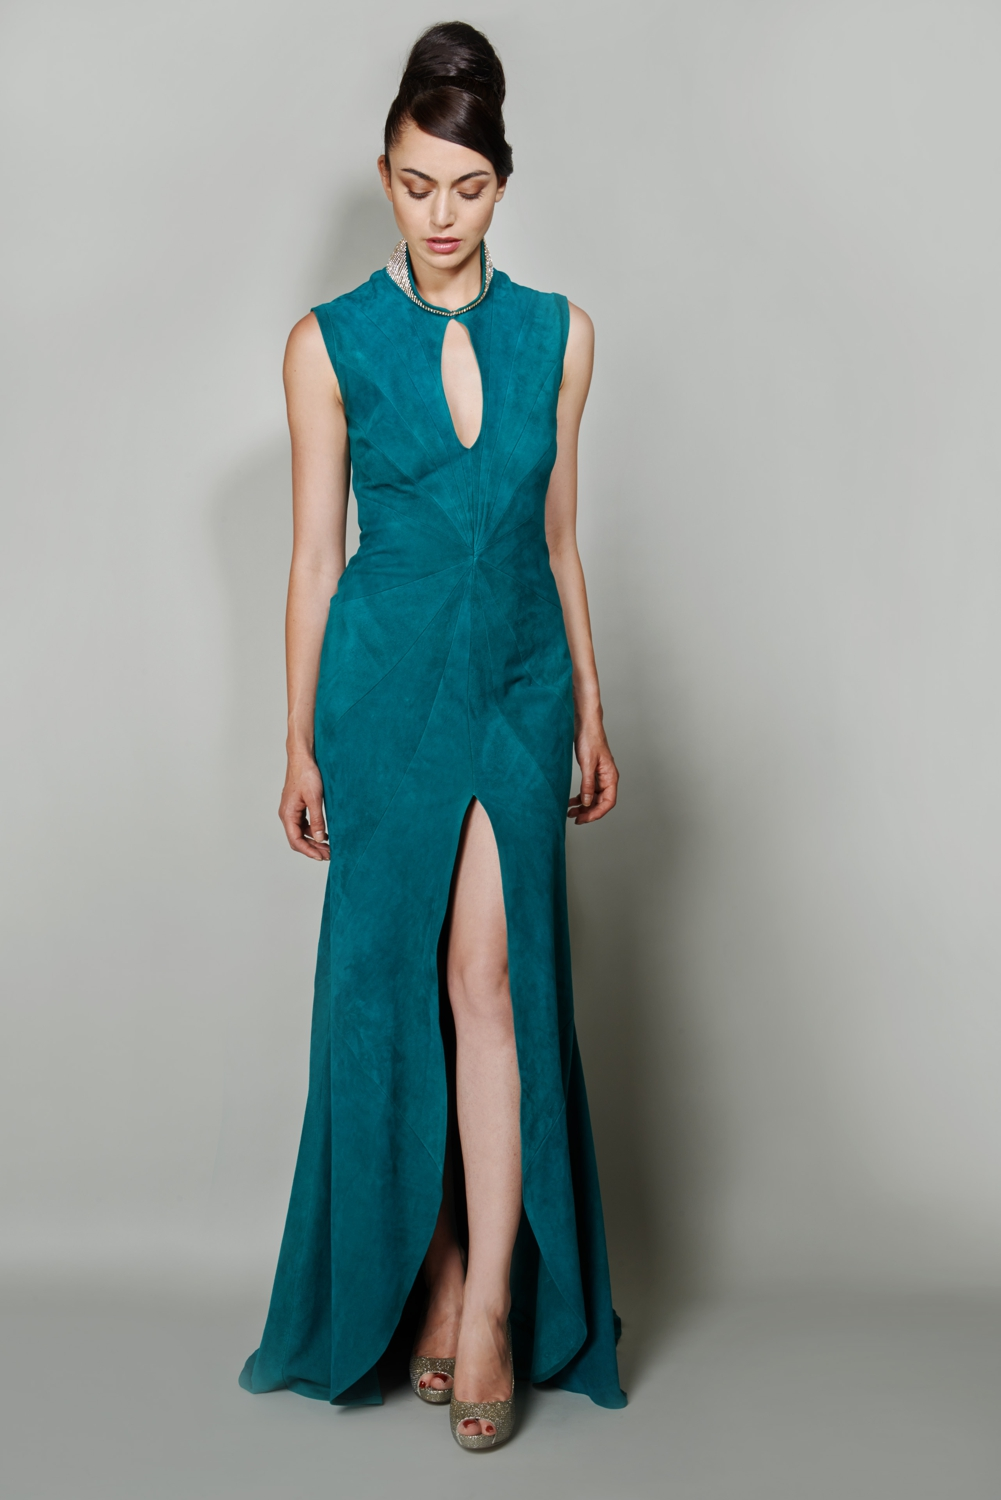 Emerald suede couture evening gown